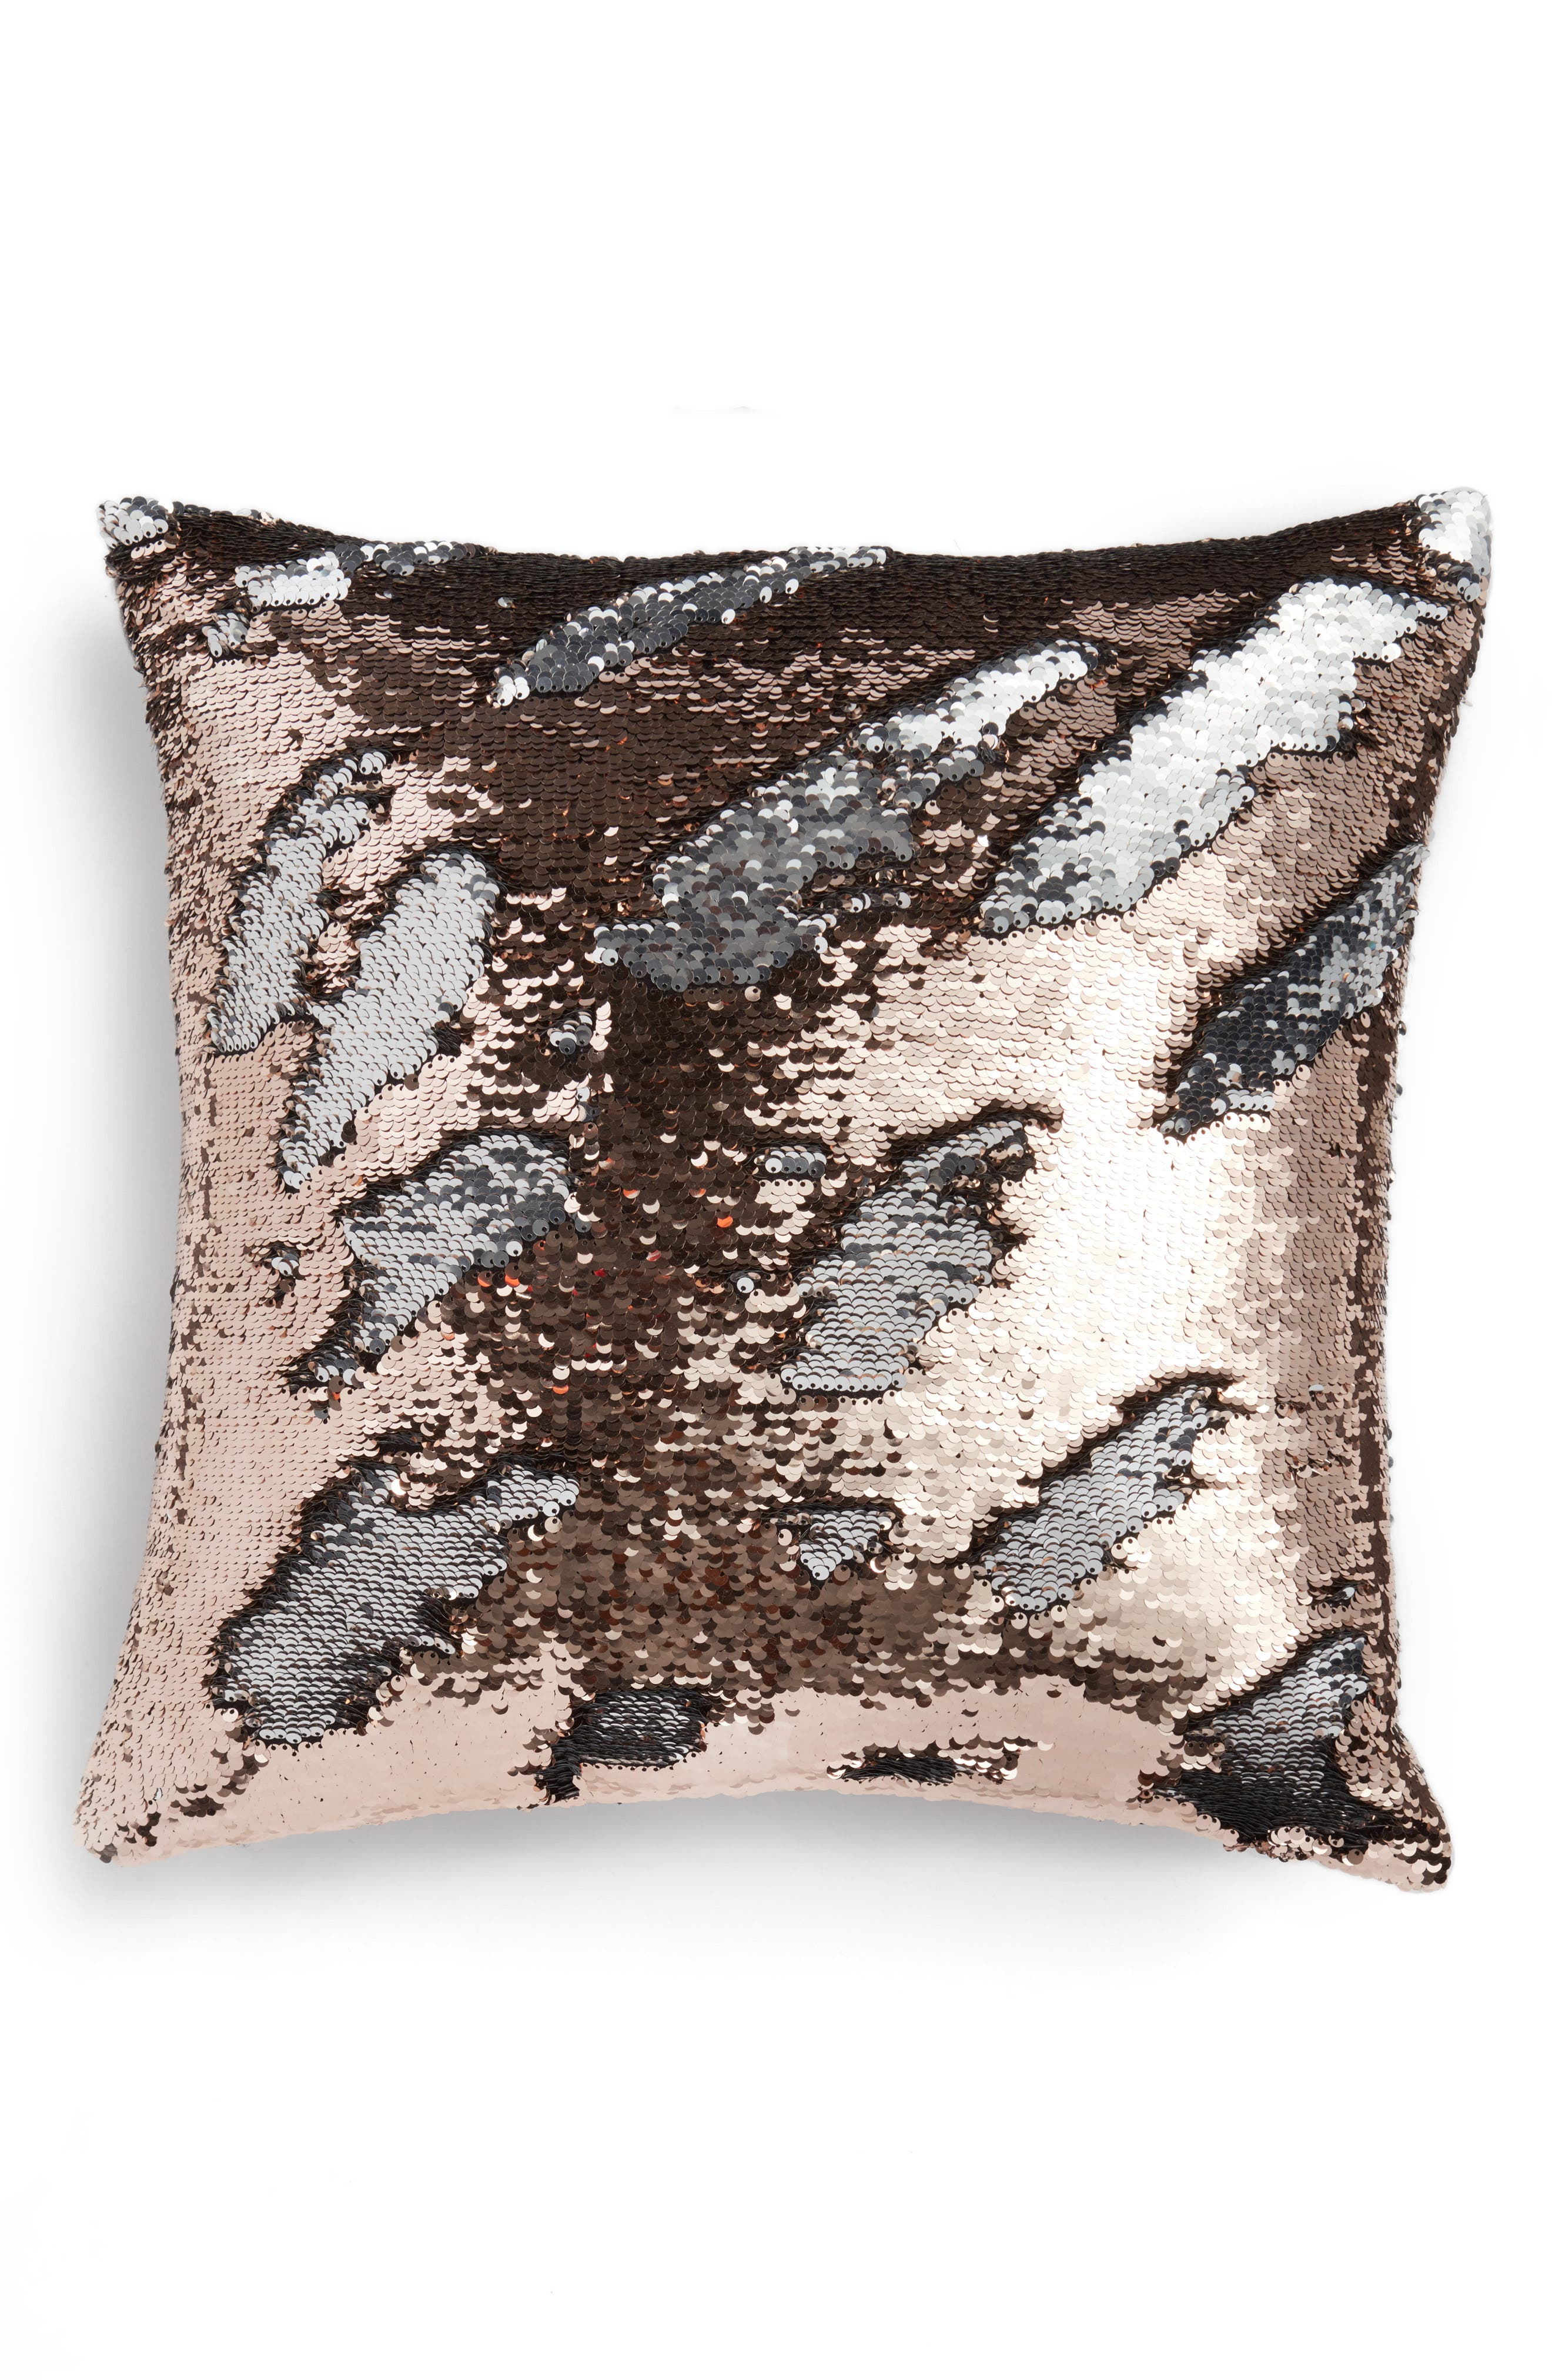 gold pillow order products pre rose pillows unicron sequin cushion unicorn personalised